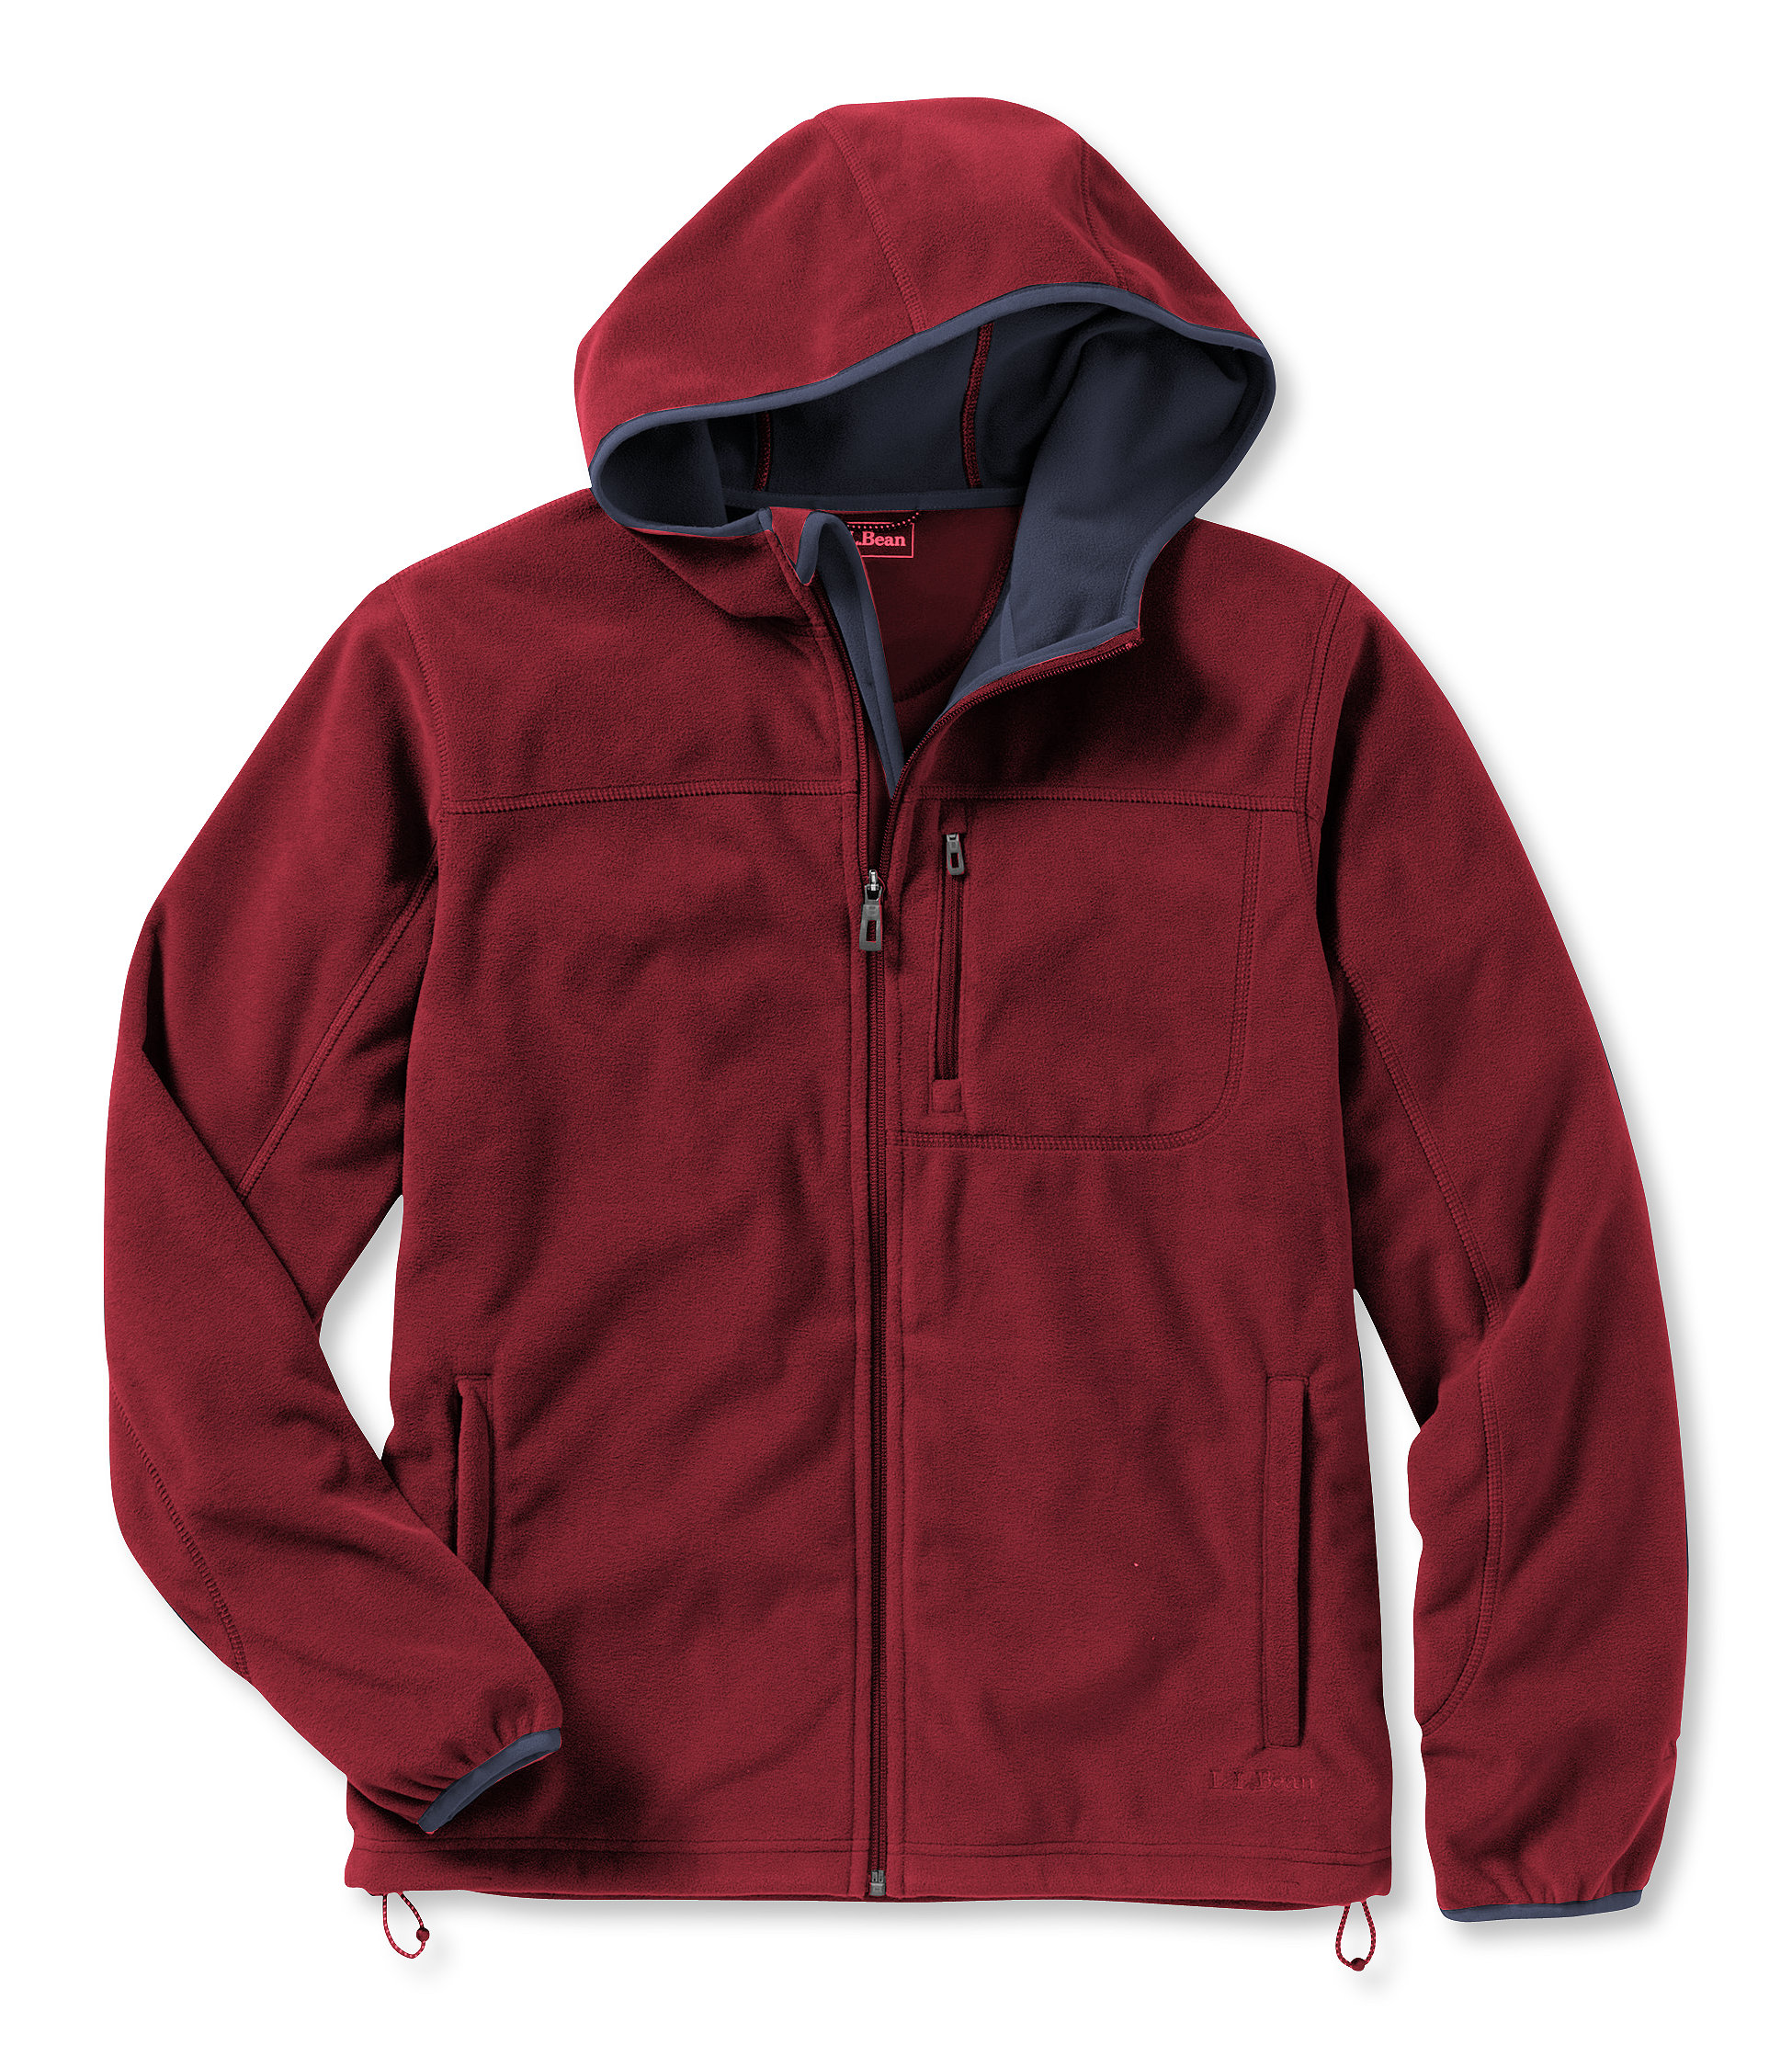 L.L.Bean Wind Challenger Fleece, Hooded Jacket